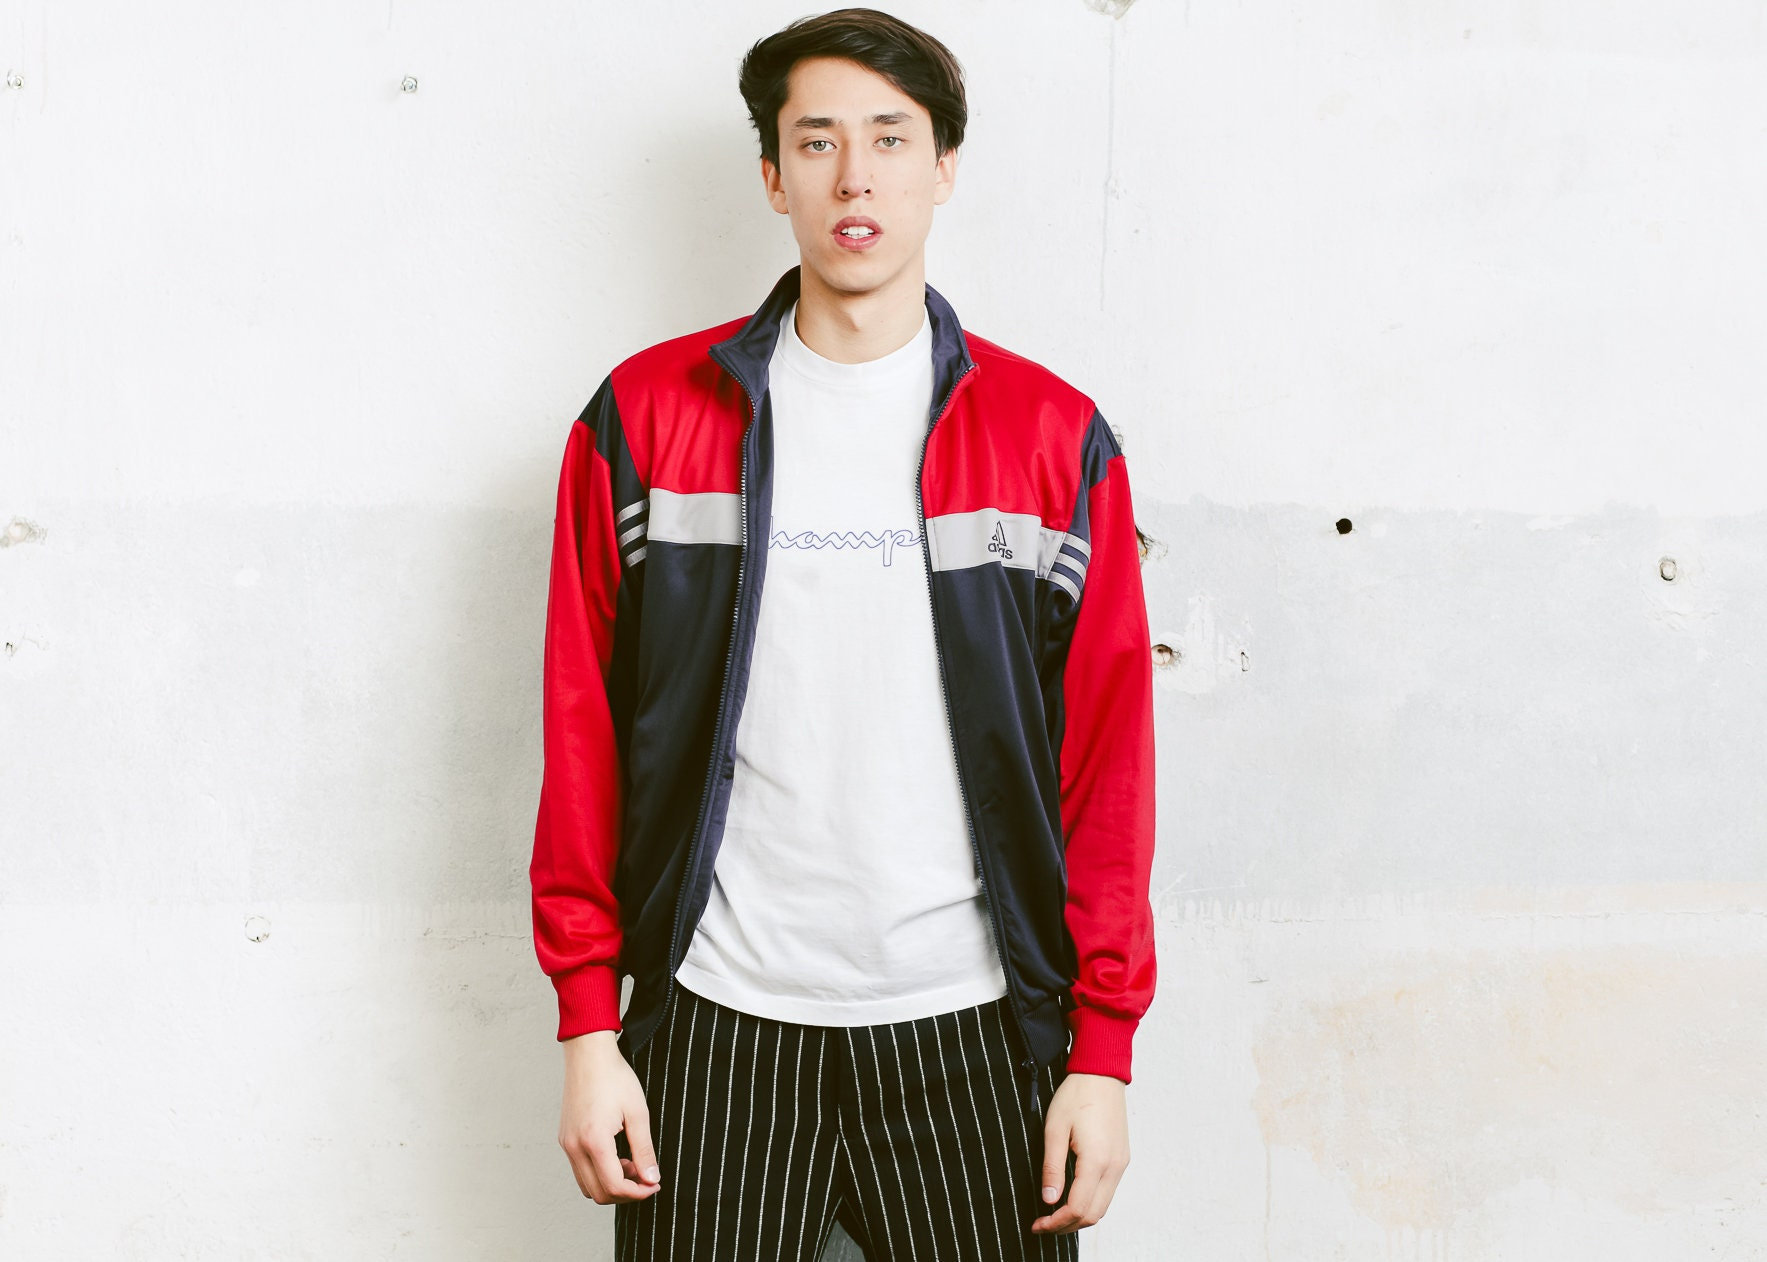 5d002aec5d8 Adidas Track Jacket . 90s Vintage Adidas Red Black Jacket Zip Up ...